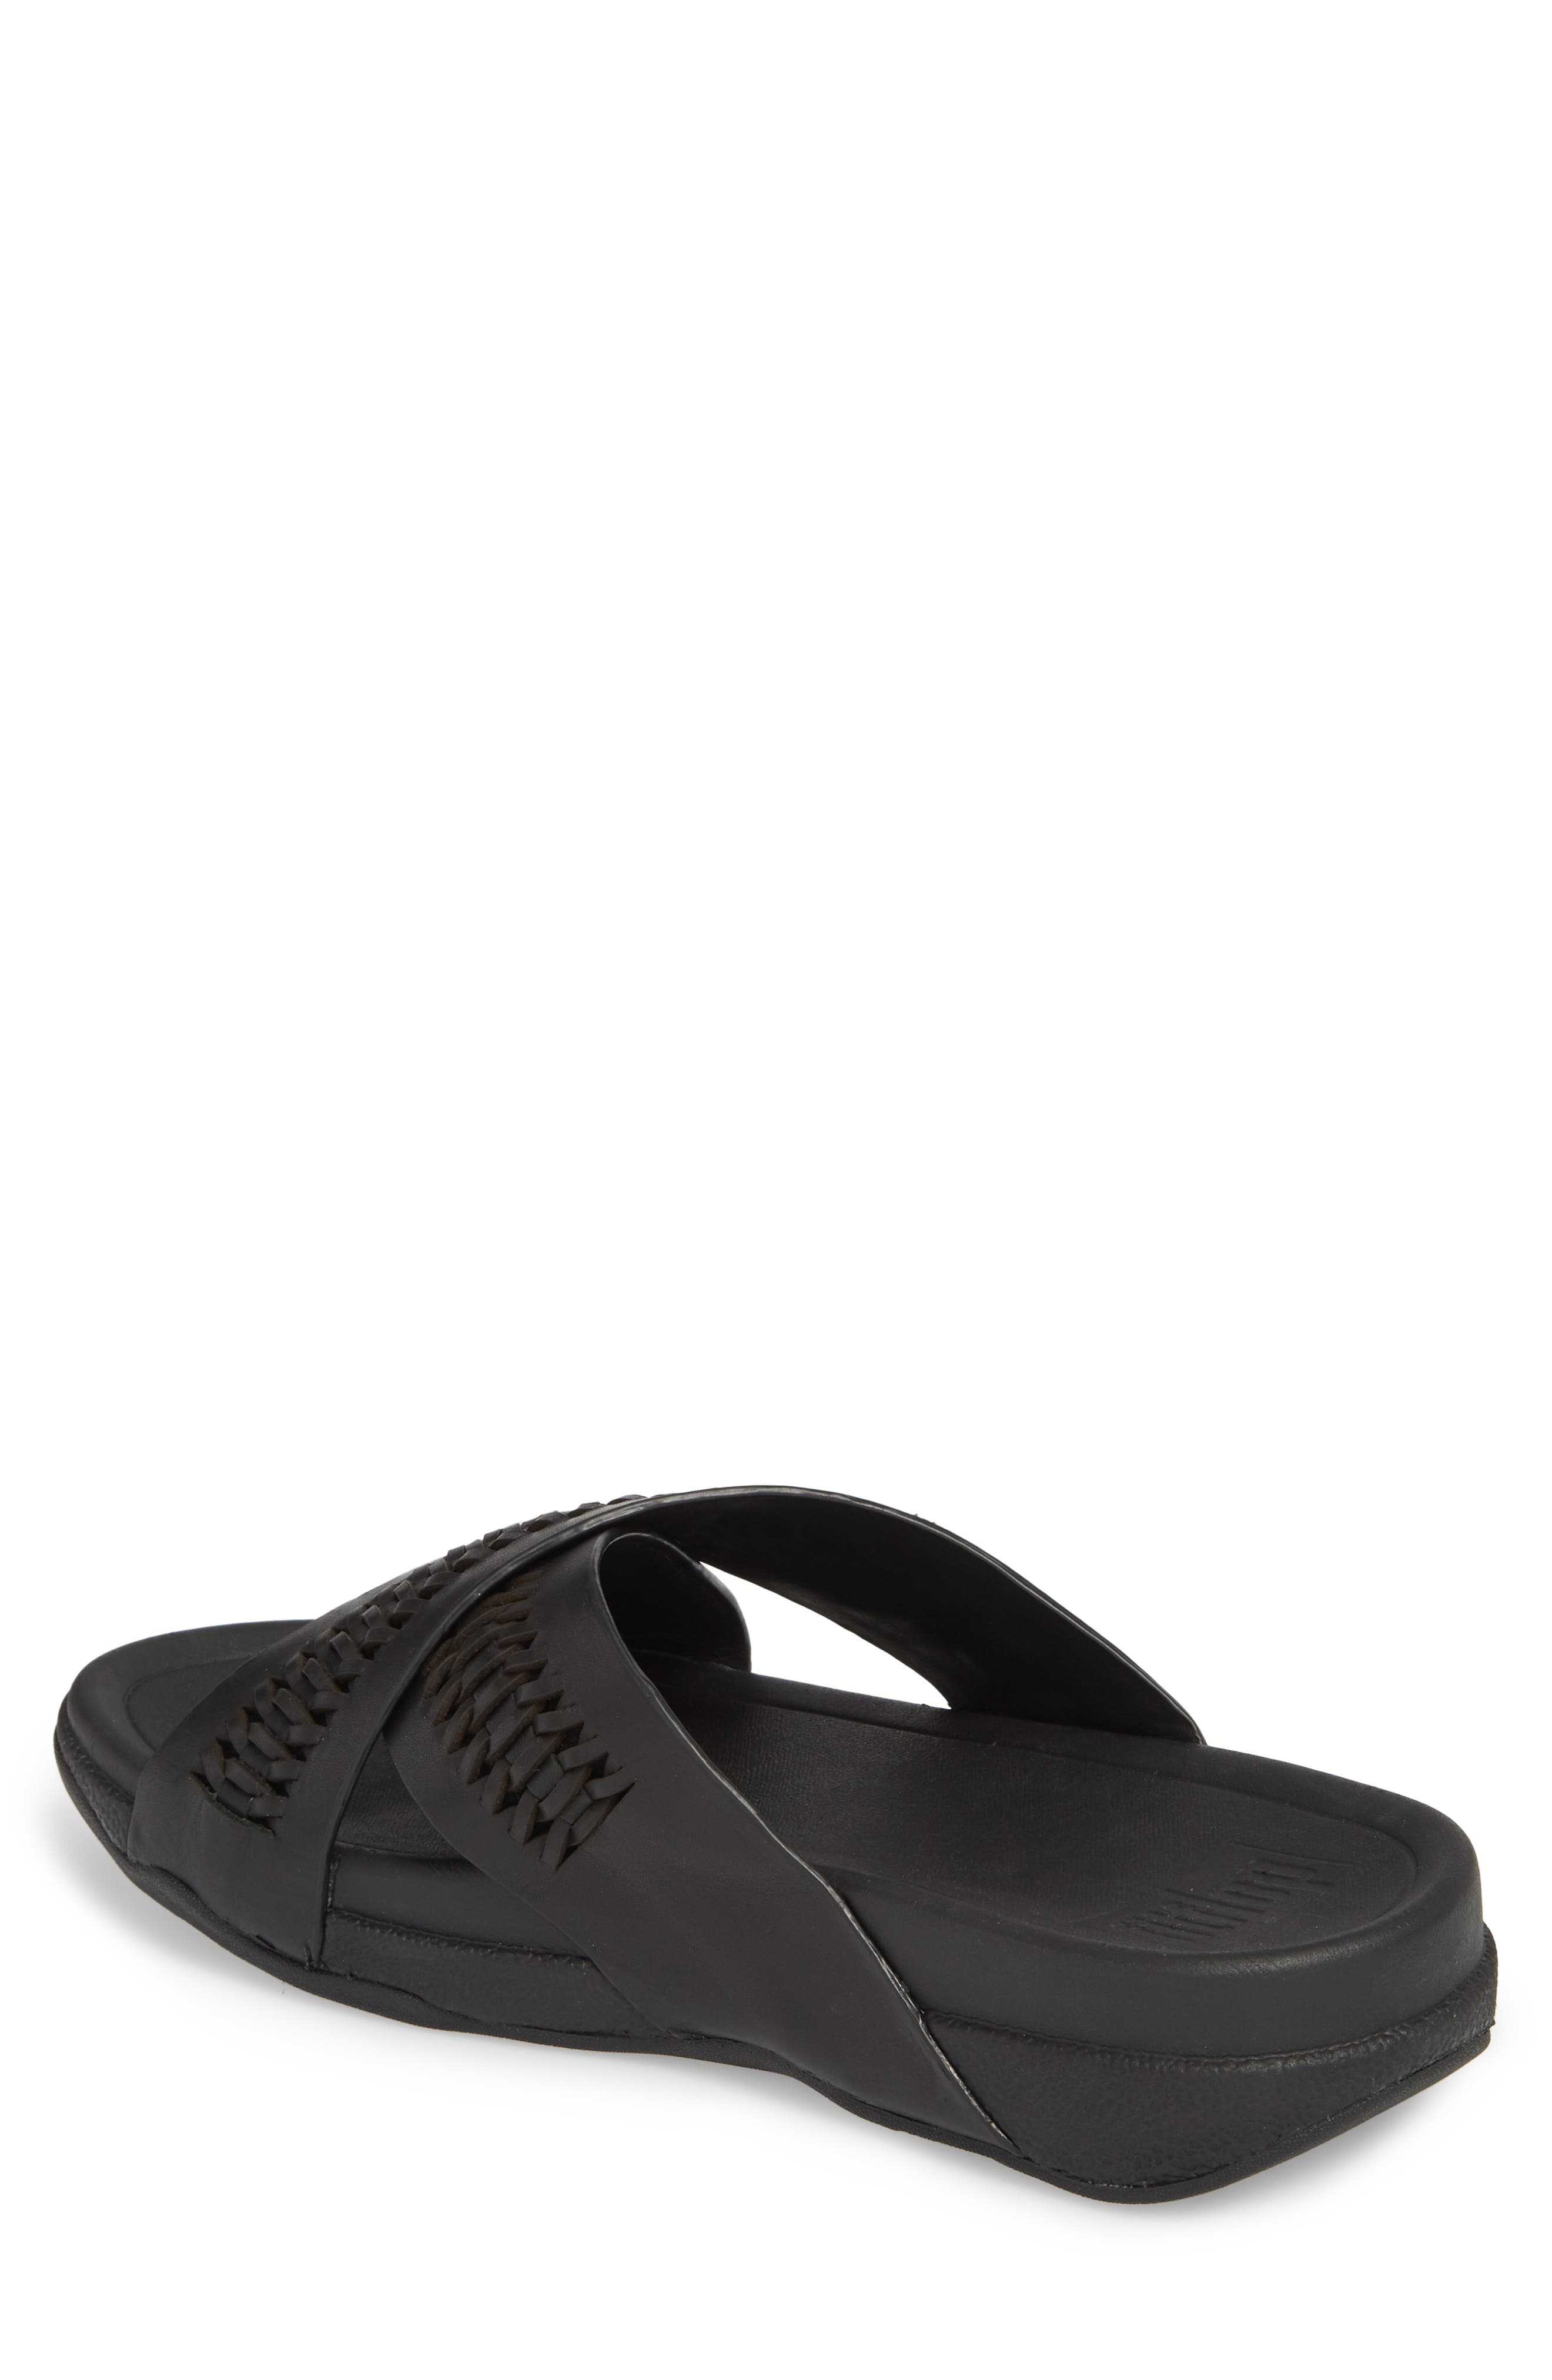 Surfer Slide Sandal,                             Alternate thumbnail 2, color,                             Black